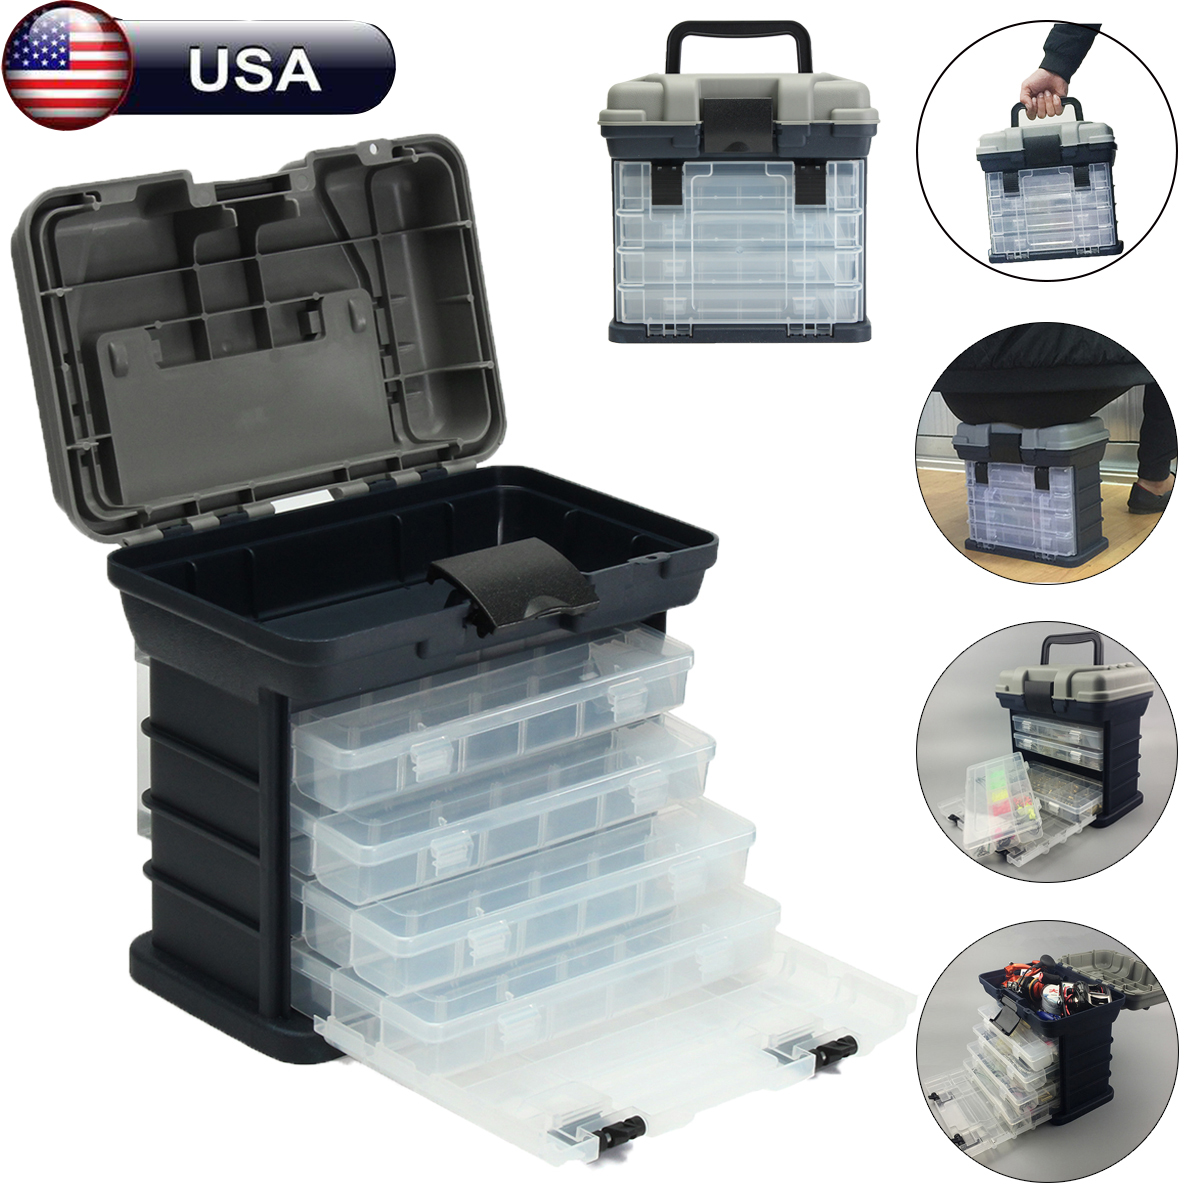 "4 Layers Multifunctional Portable Fishing Tackle Box Drawer Tray Bait Case Tool Organizer Lures Storage , 10.63""x10.24""x6.69"""